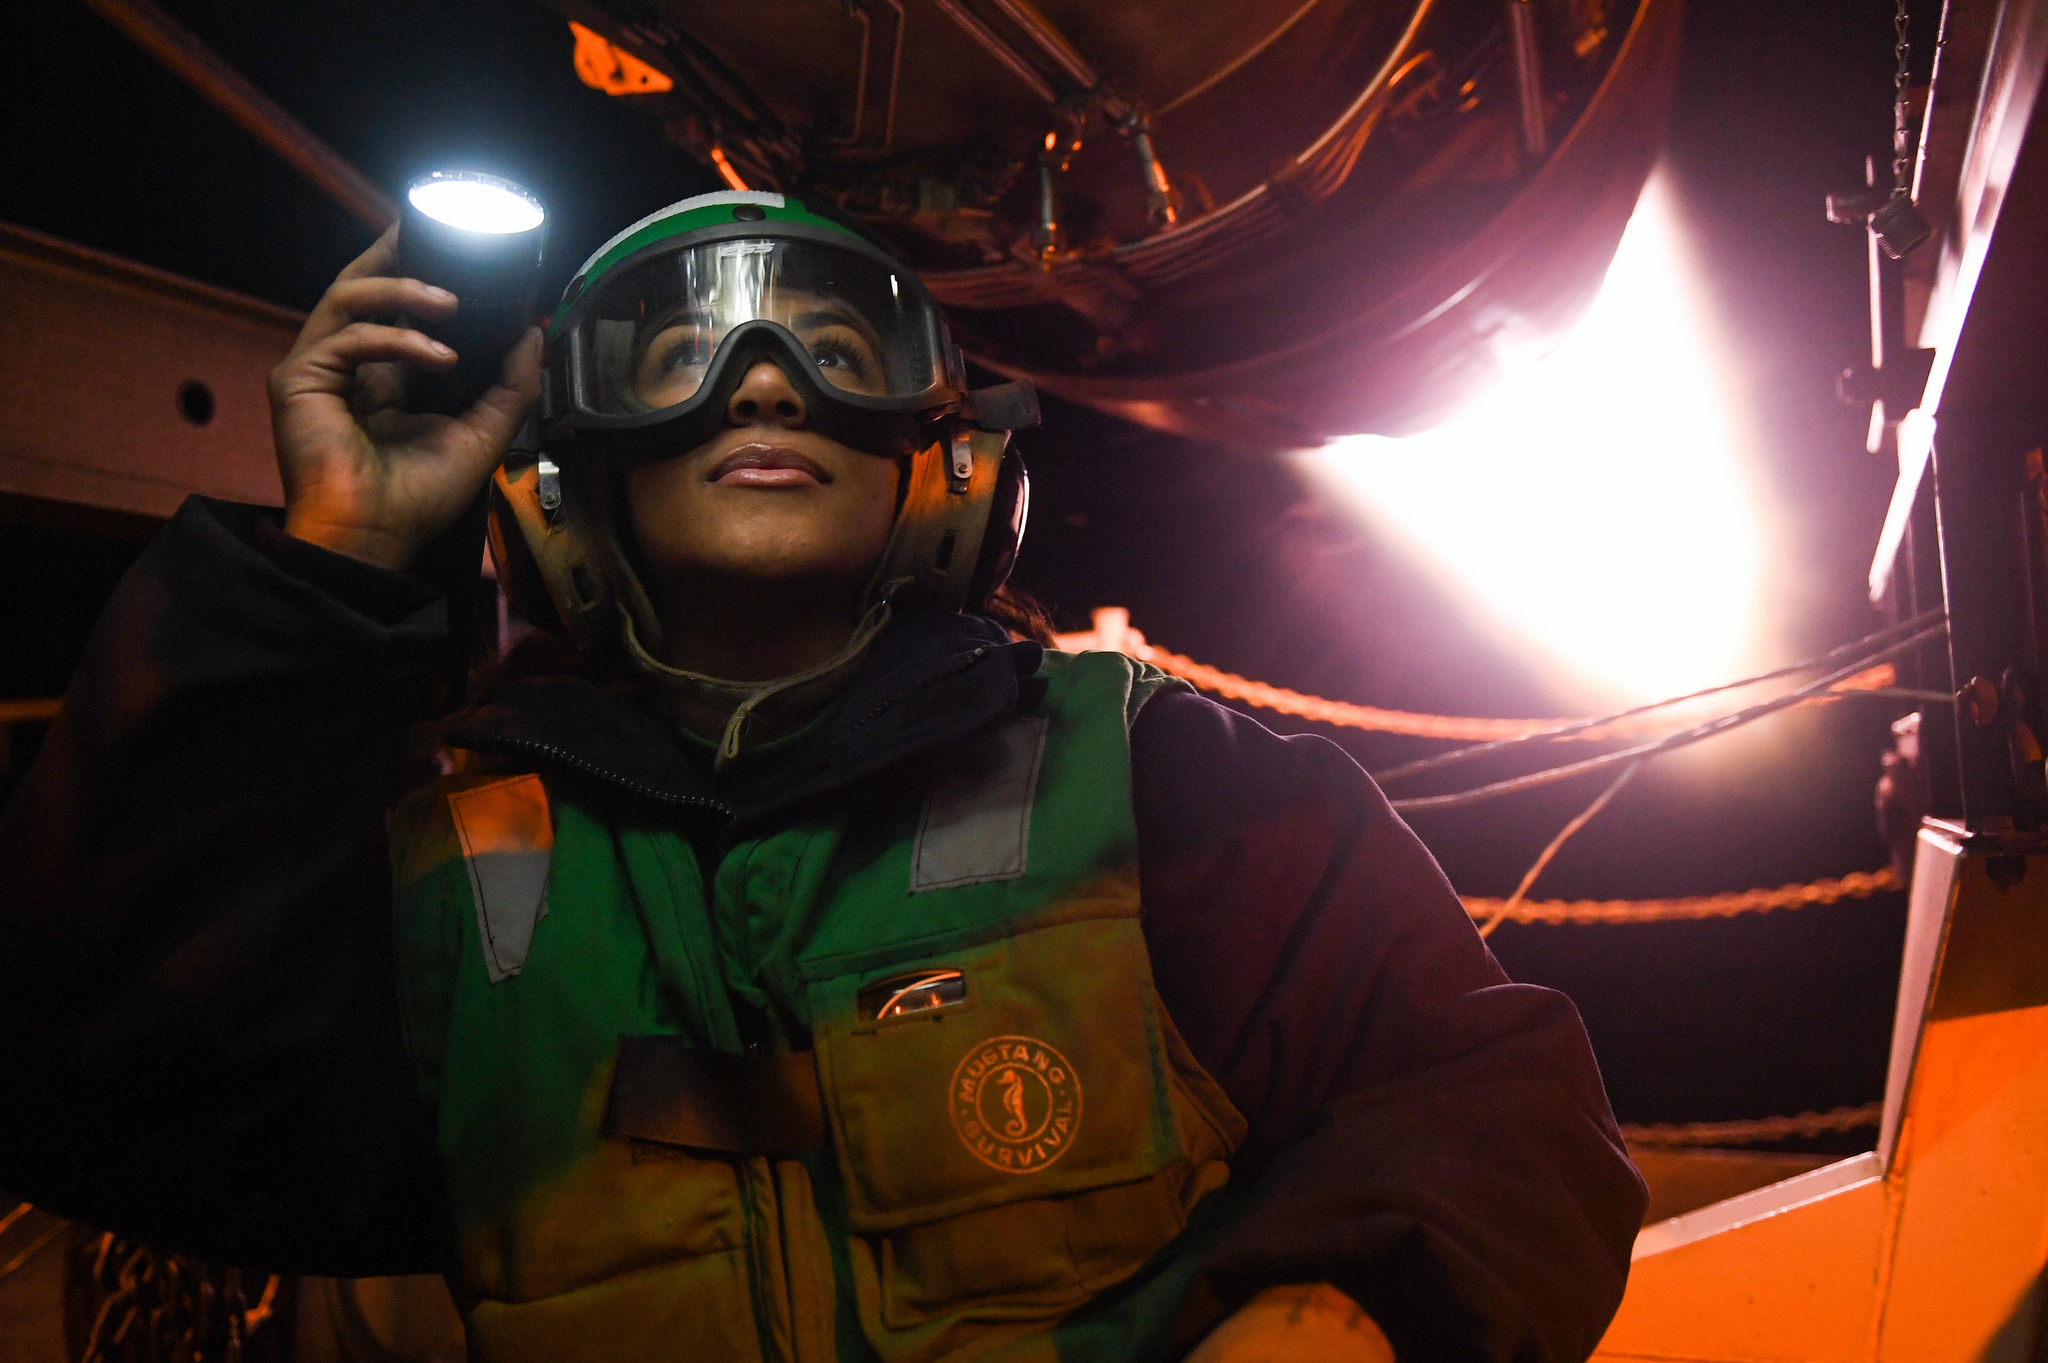 Aviation Machinist's Mate Airman Jadah Martinez inspects an after burner for fuel leaks Oct. 26, 2018, during an active test on the fantail aboard the Nimitz-class aircraft carrier USS Harry S. Truman (CVN 75) in the Norwegian Sea. (MC3 Victoria Granado/Navy)